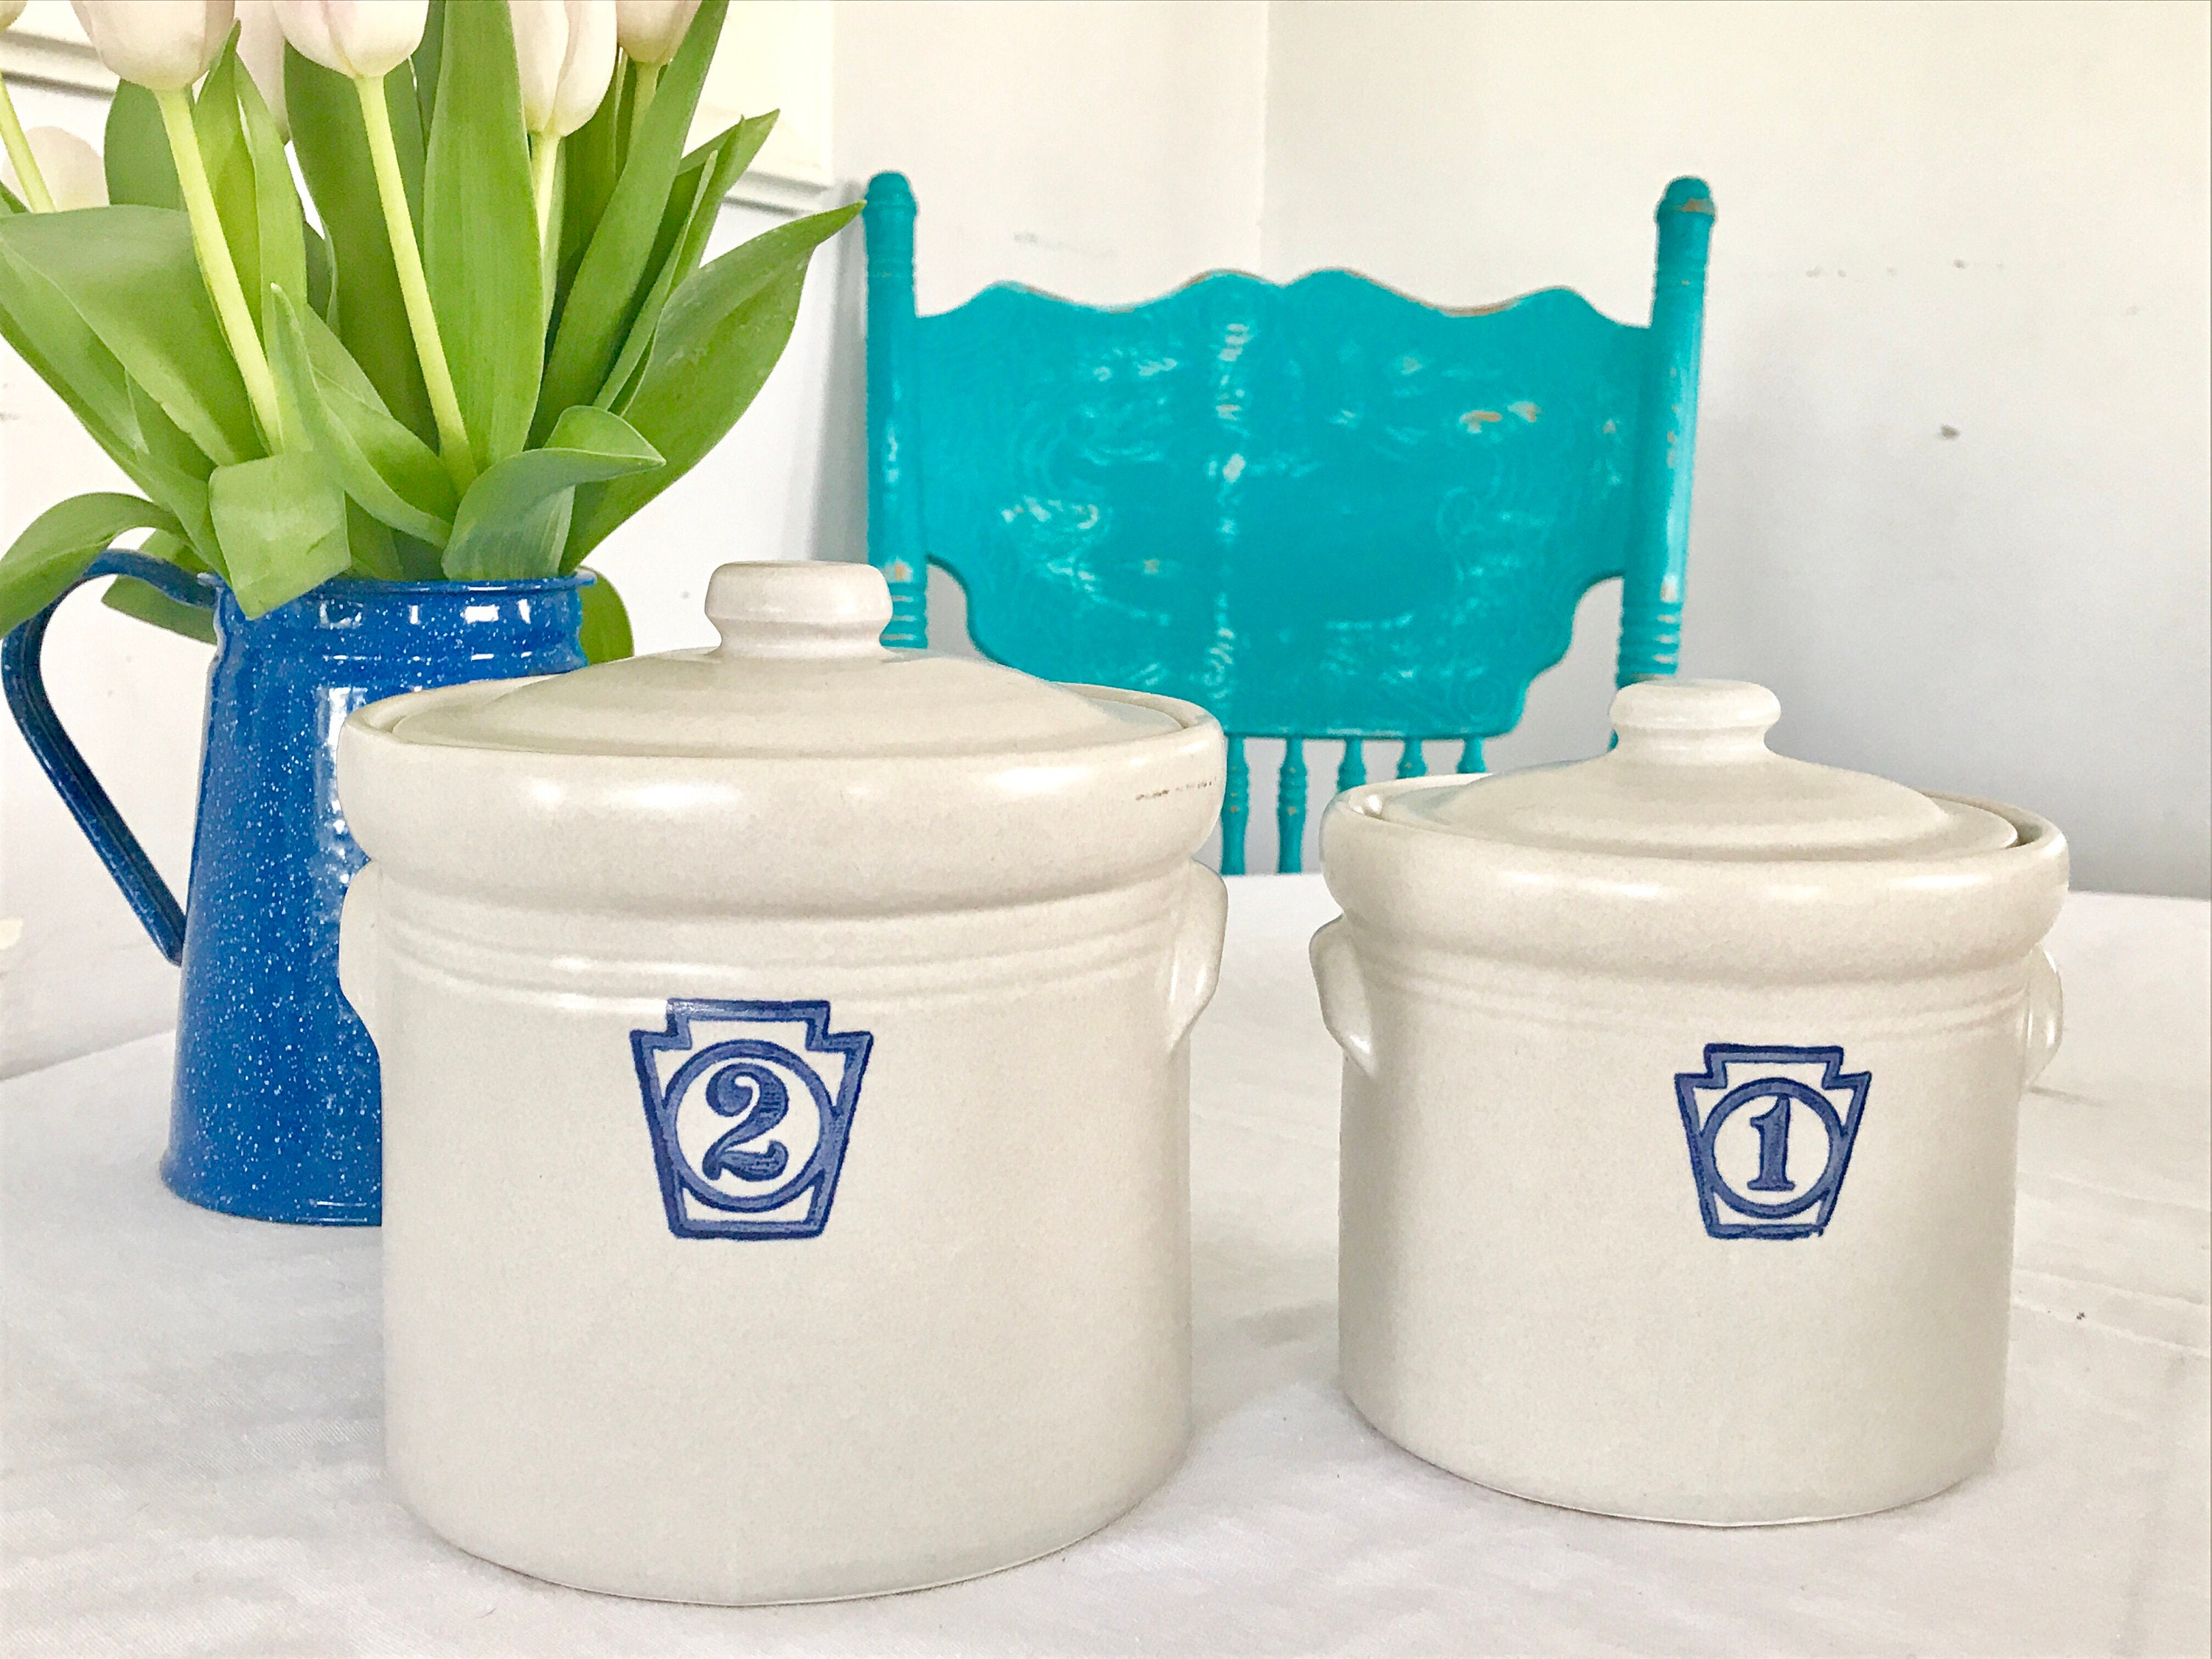 Vintage Farmhouse style Pfaltzgraff french Kitchen Canisters 1